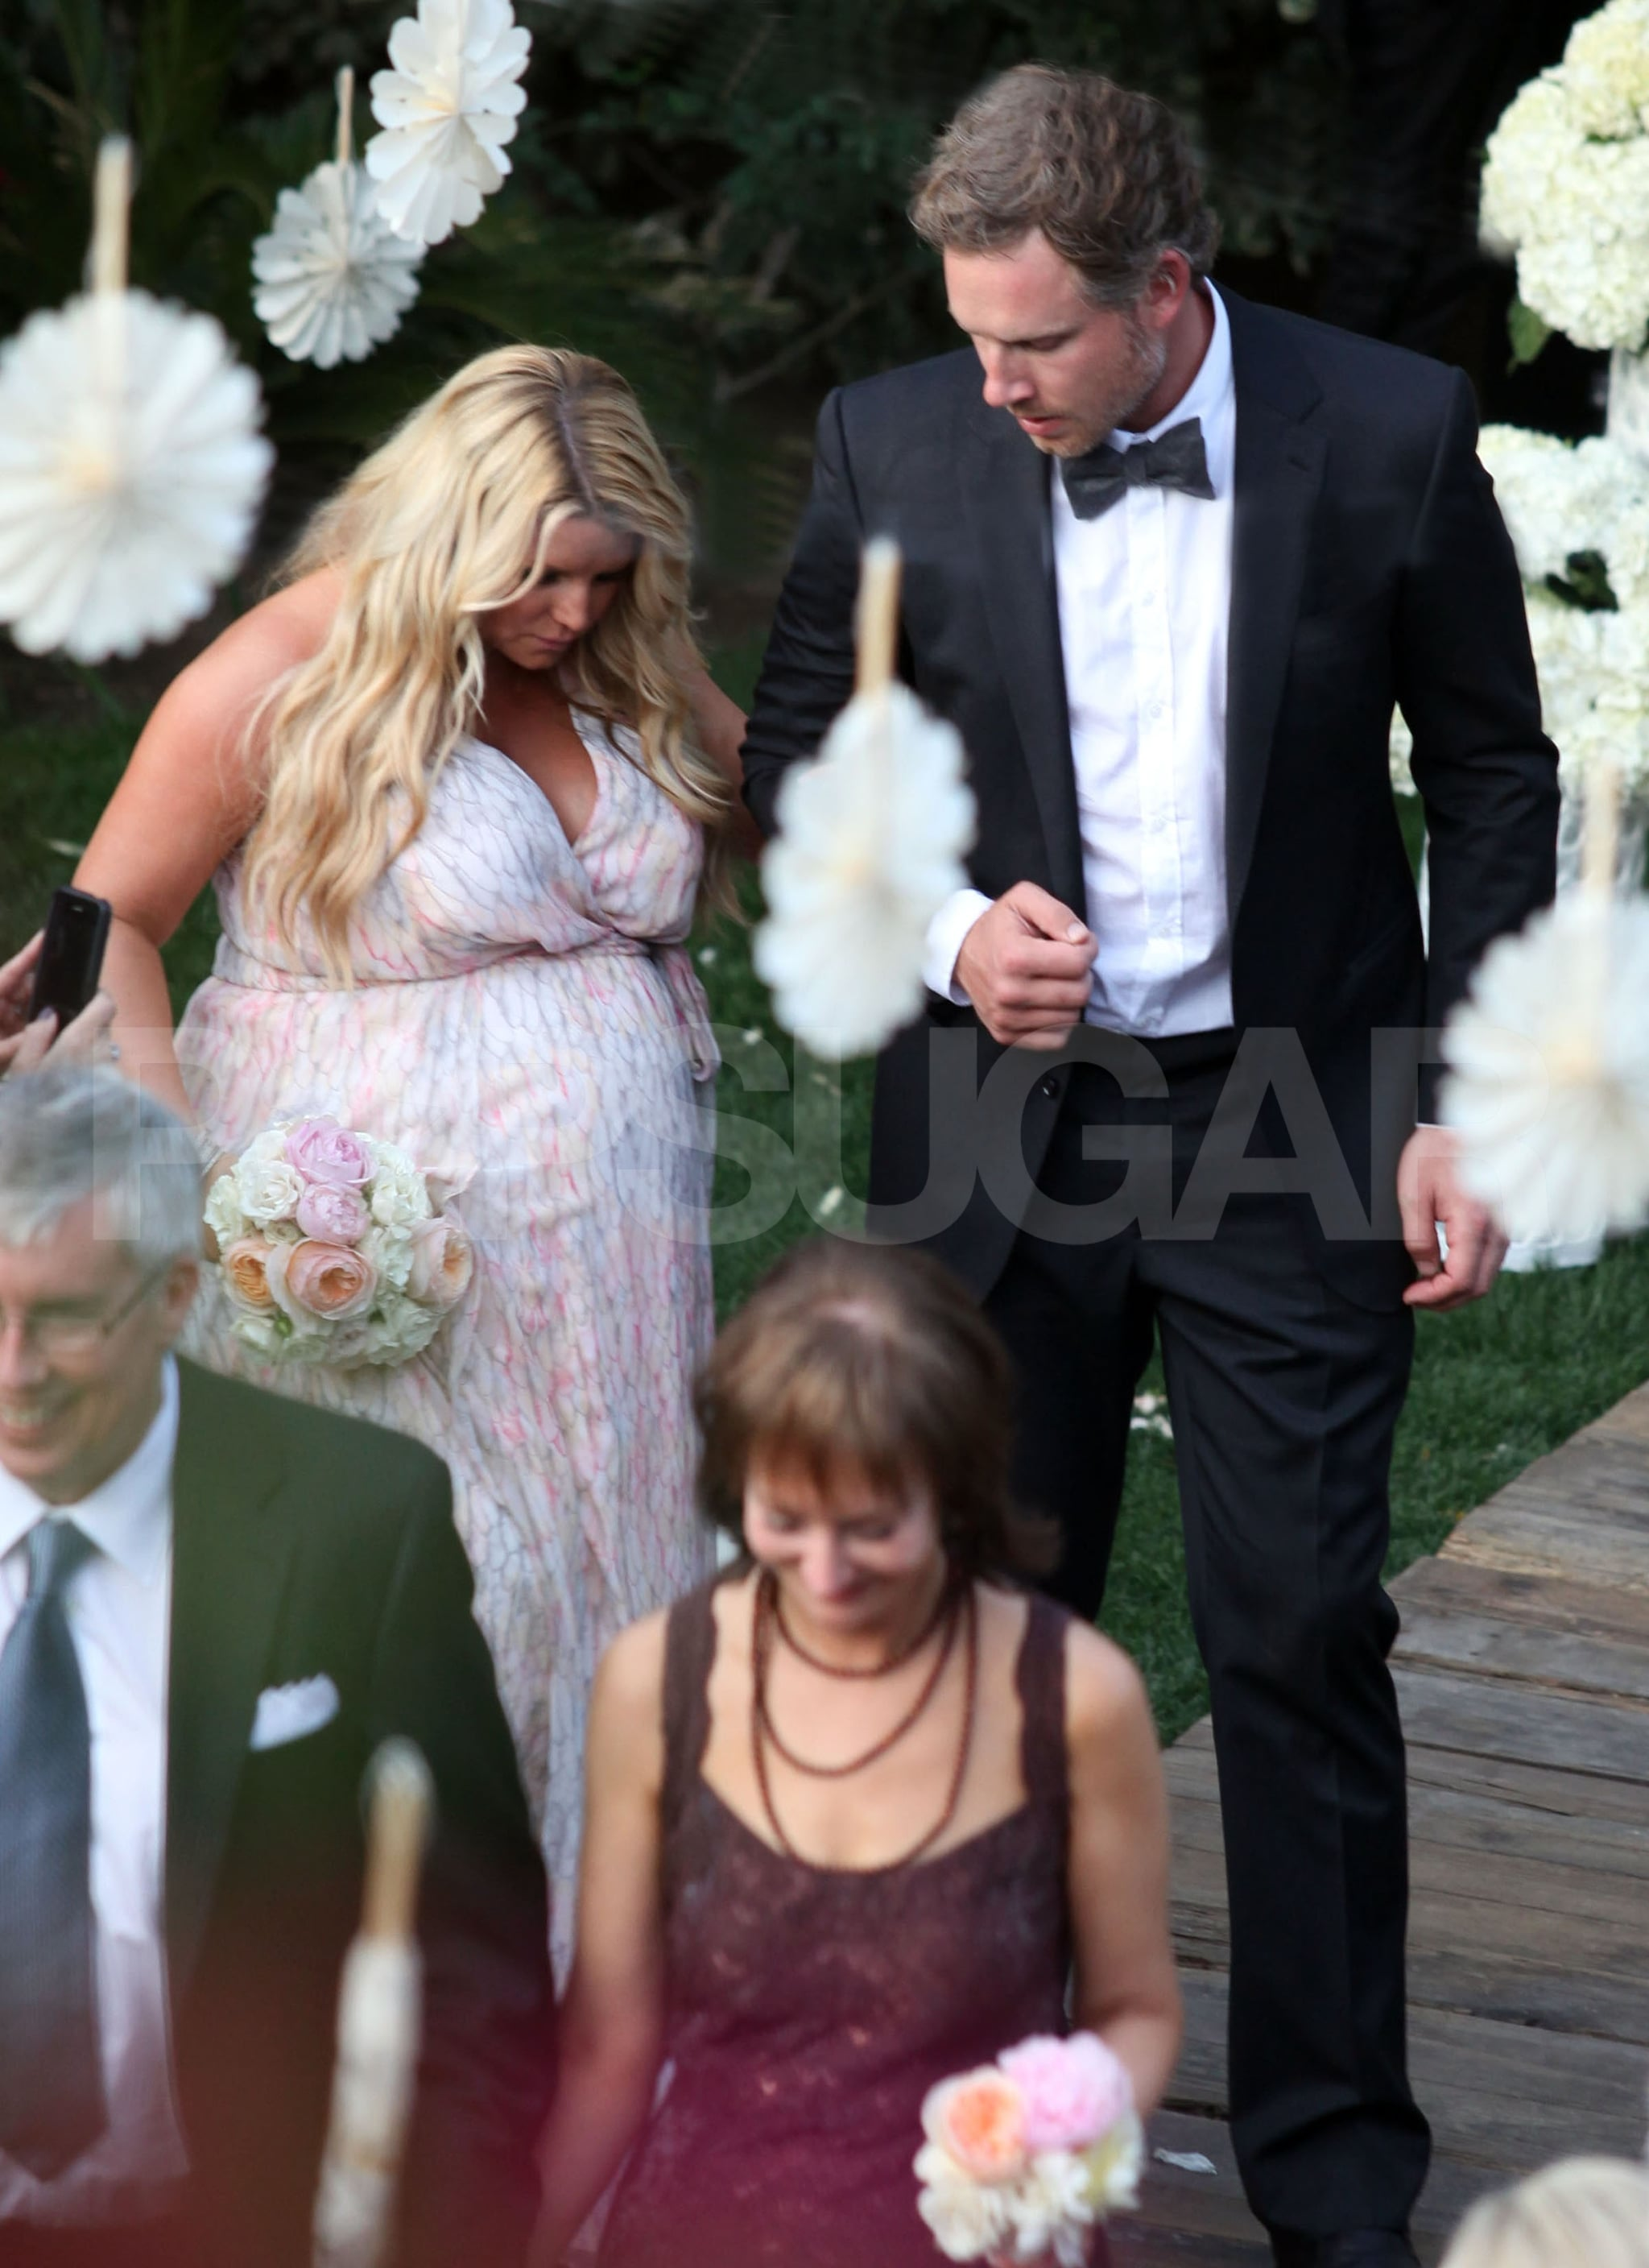 Jessica Simpson Walked With Fiance Eric Johnson At A Wedding Pregnant Jessica Simpson Walks Down The Aisle At A Friend S Wedding Popsugar Celebrity Photo 4